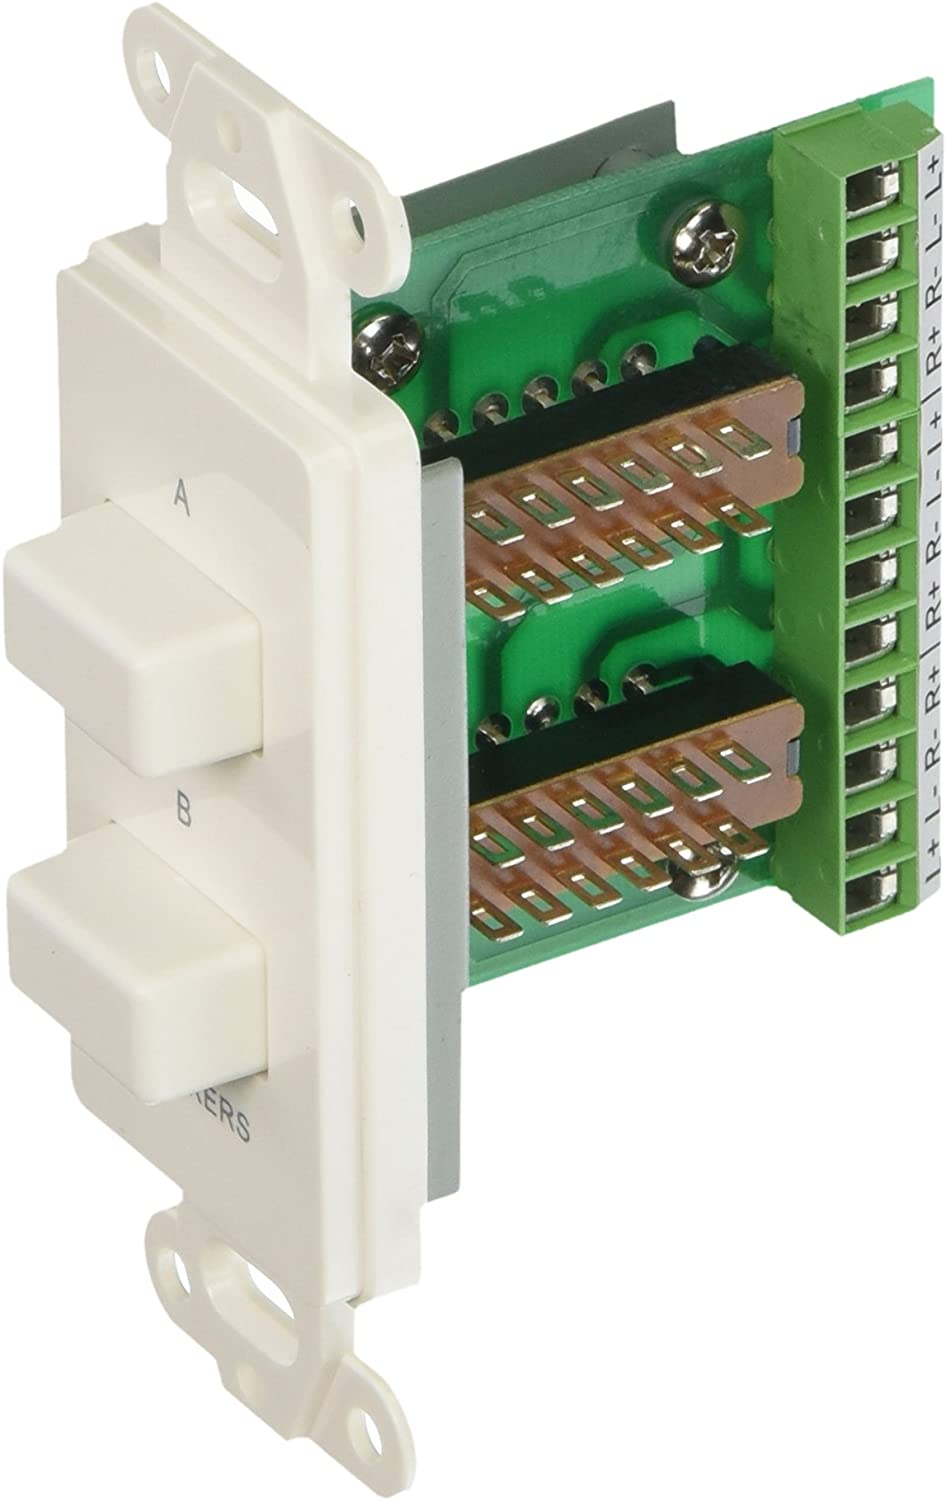 White OEM Systems IW-303 Speaker Switches